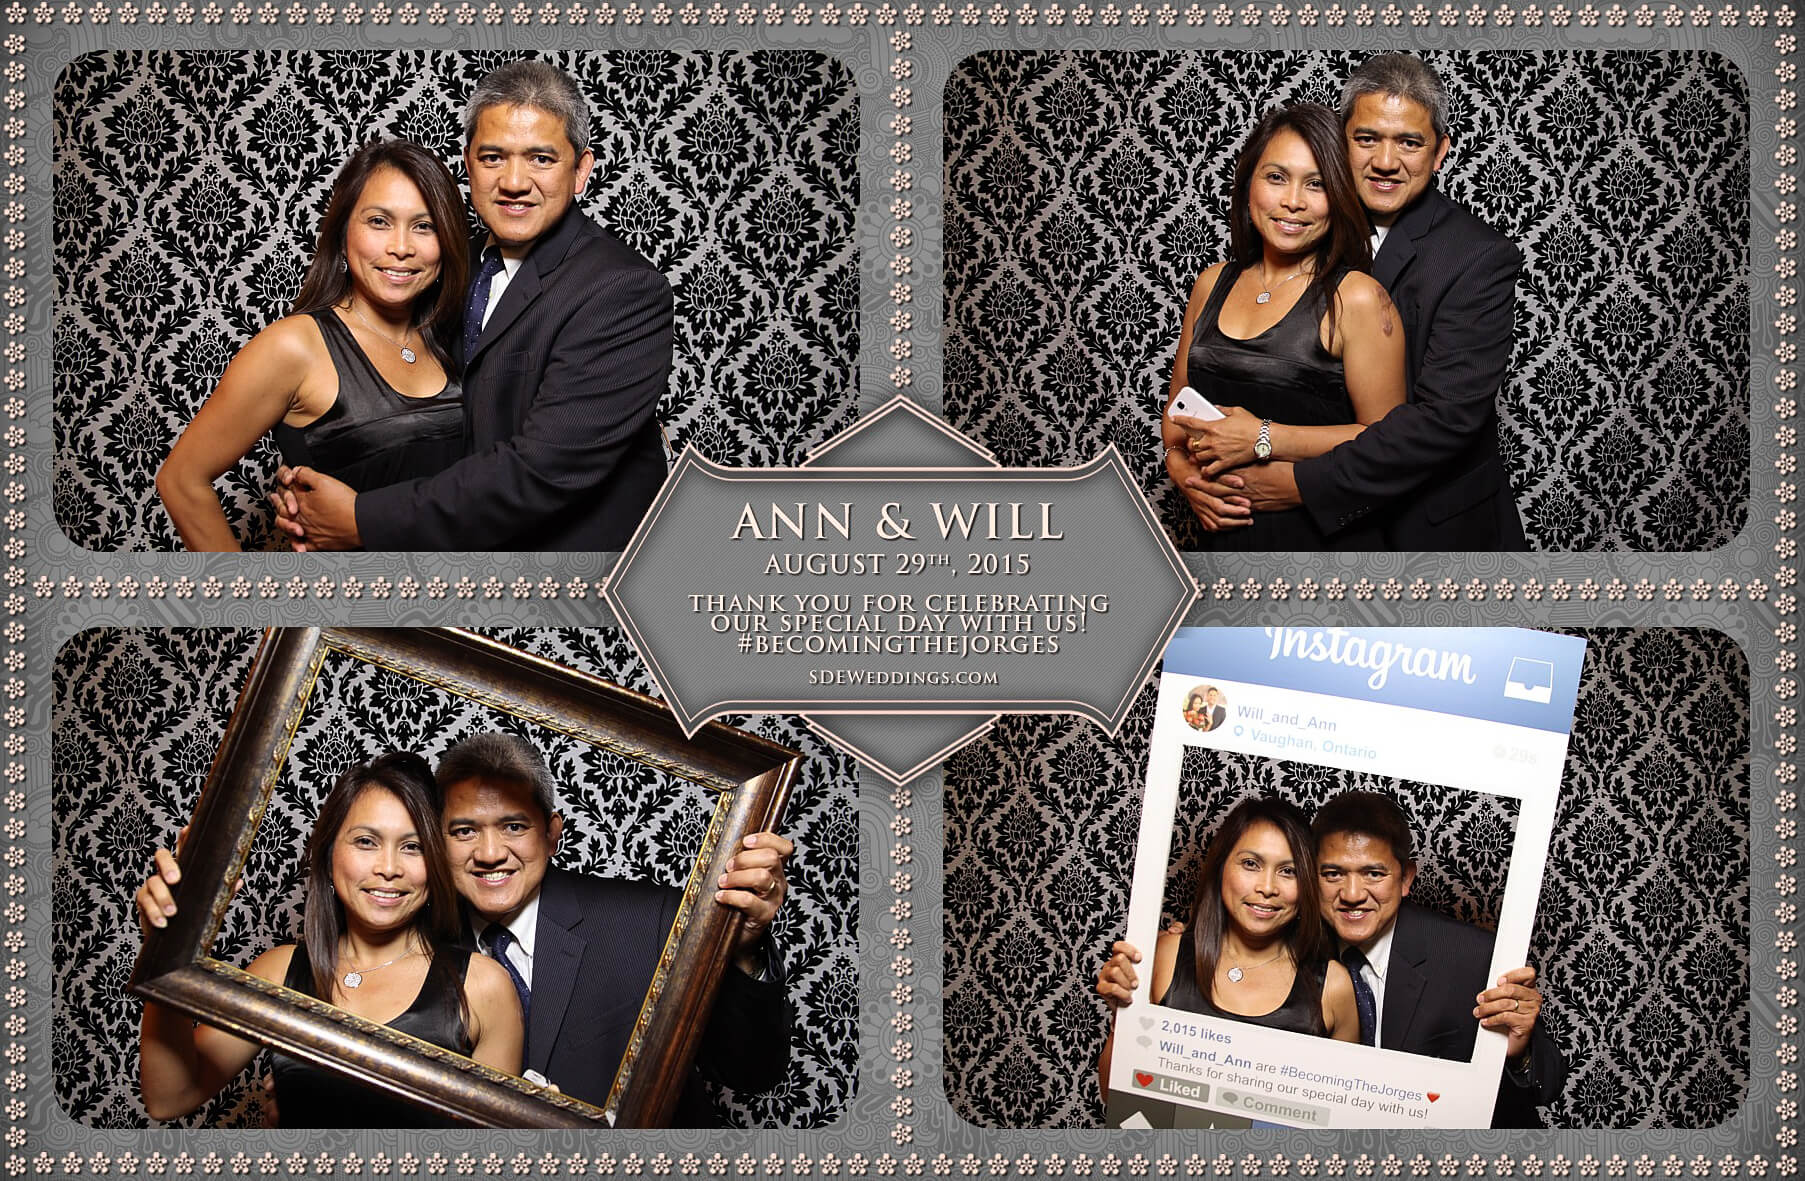 Toronto Wedding Photo Booth at Destiny Banquet Hall 4